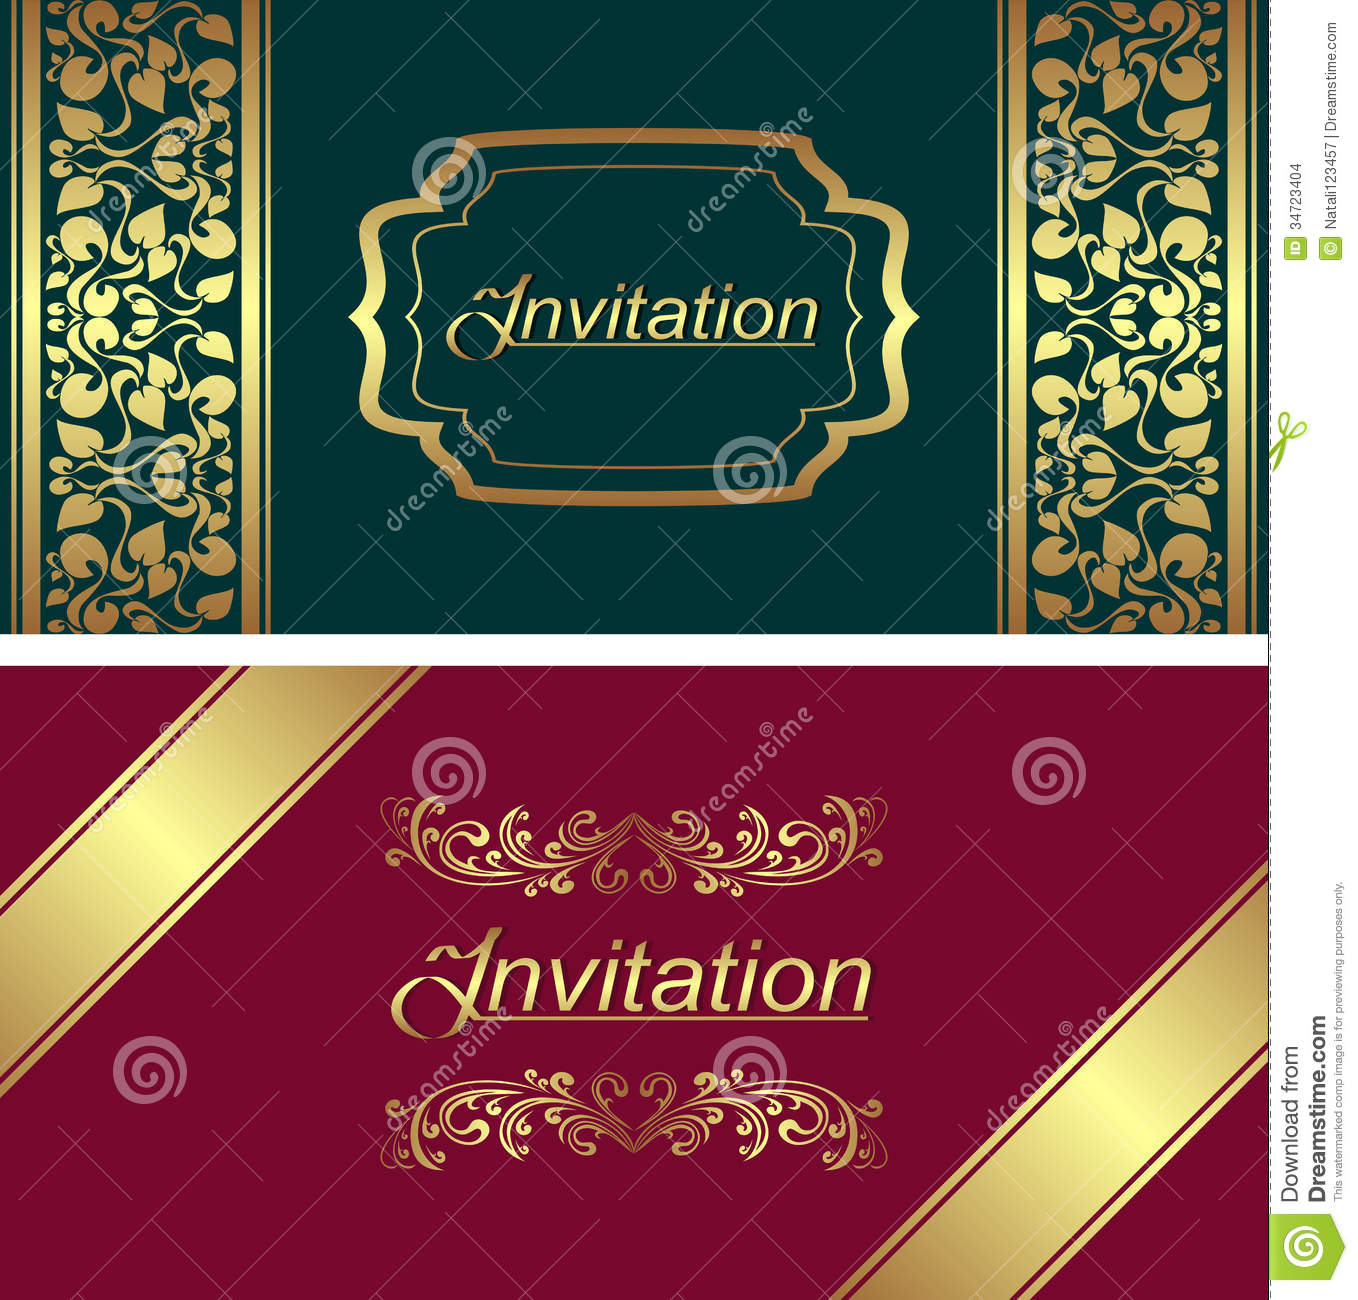 Satisfactory image intended for printable invitation card stock